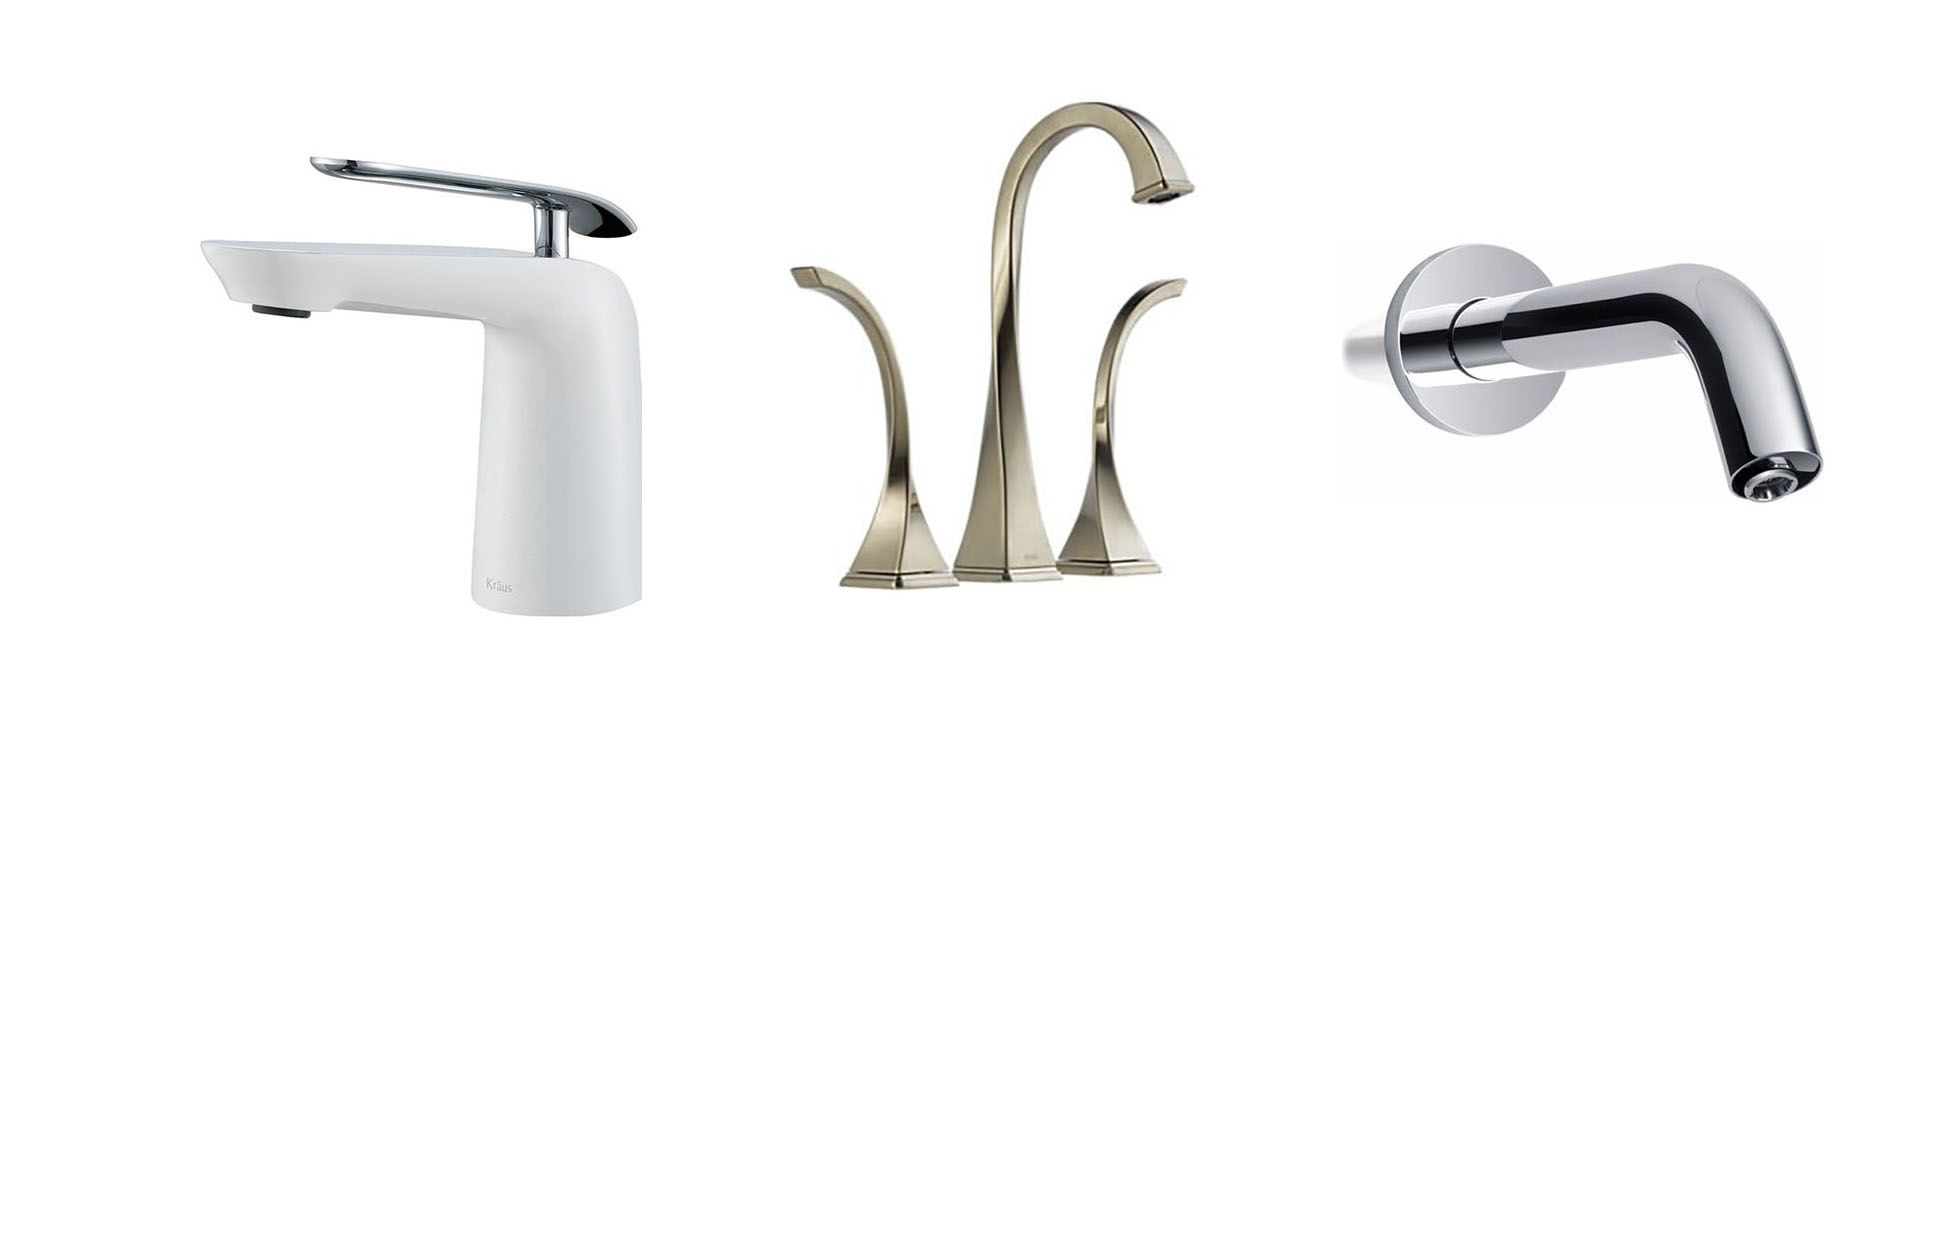 20 Best Bathroom Faucets - Stylish Bathtub and Bathroom Sink Faucets ...